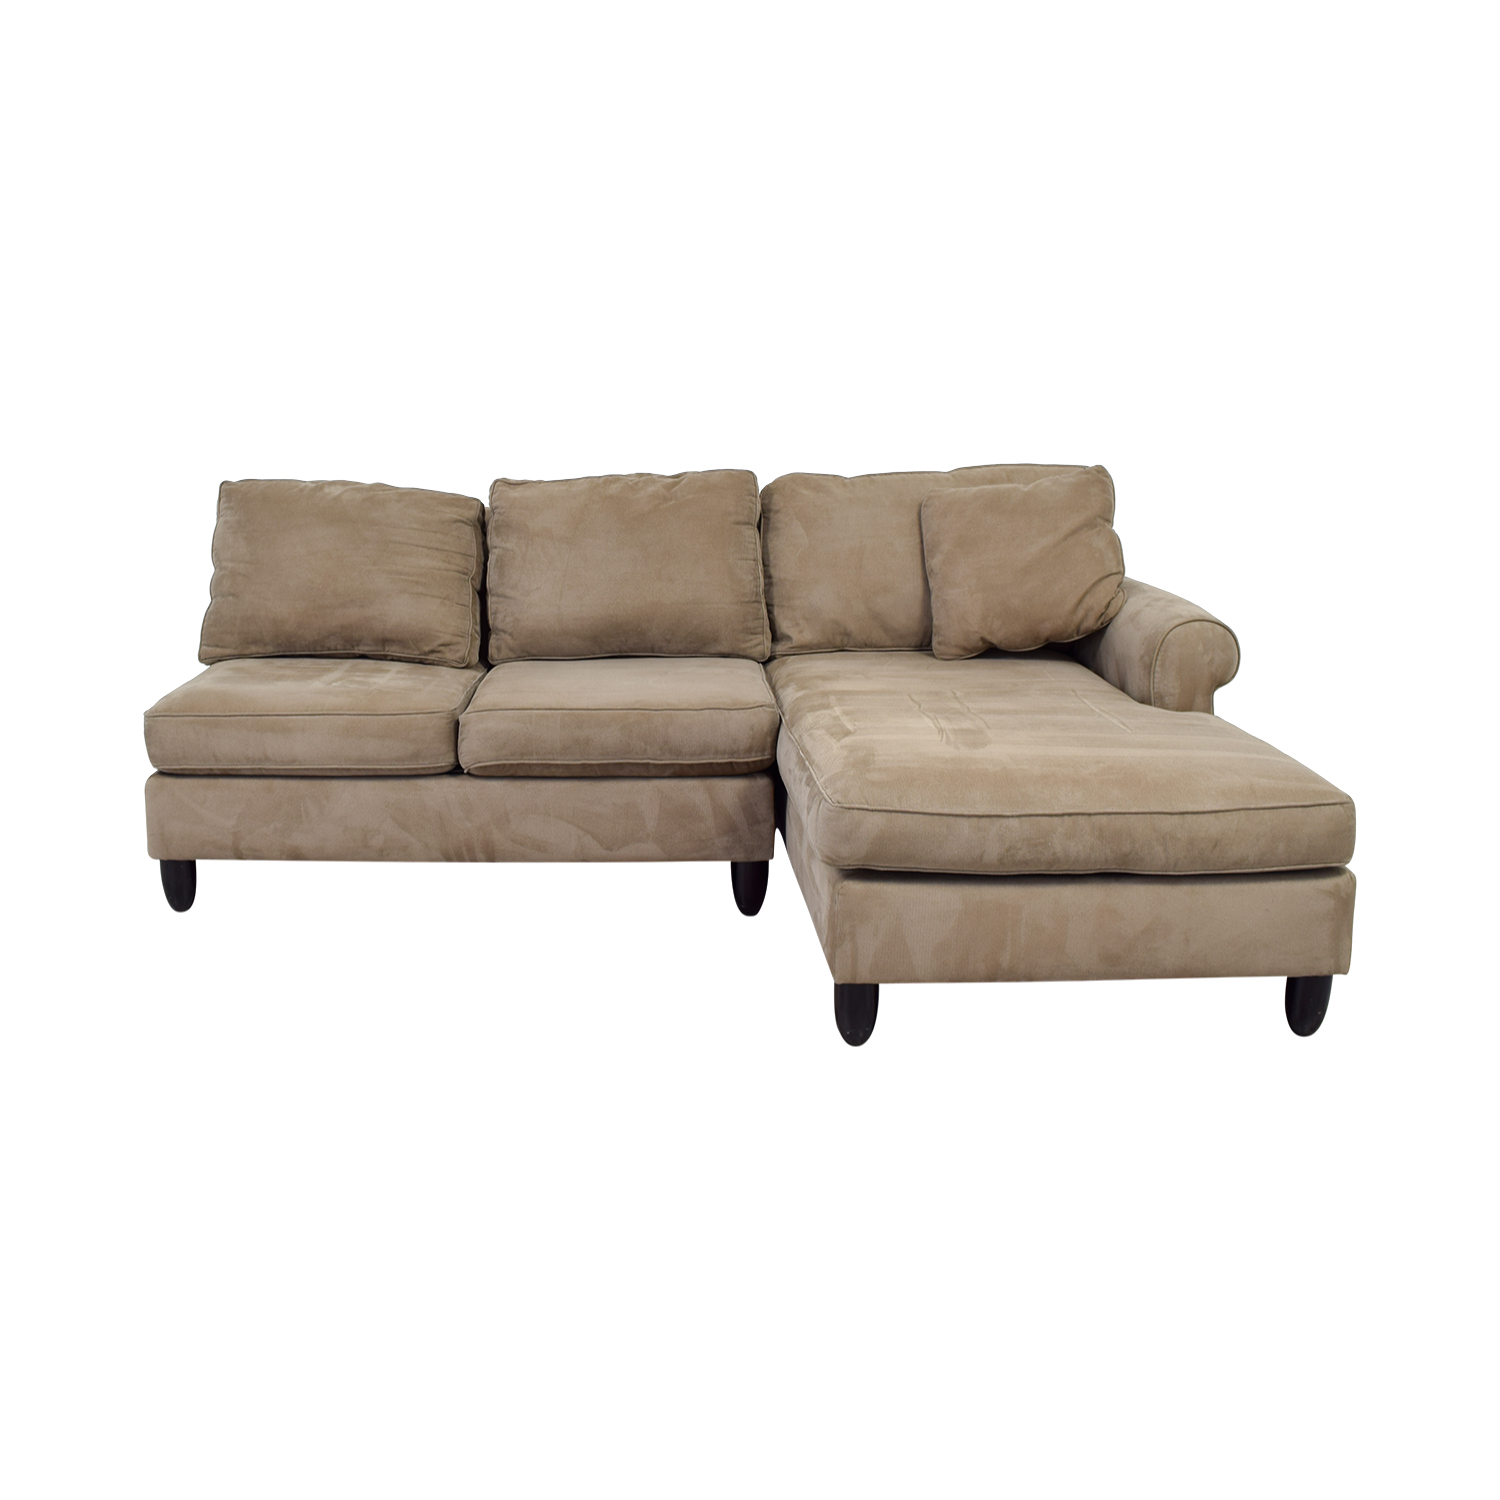 90% OFF - Havertys Haverty's Tan Chaise Sectional / Sofas